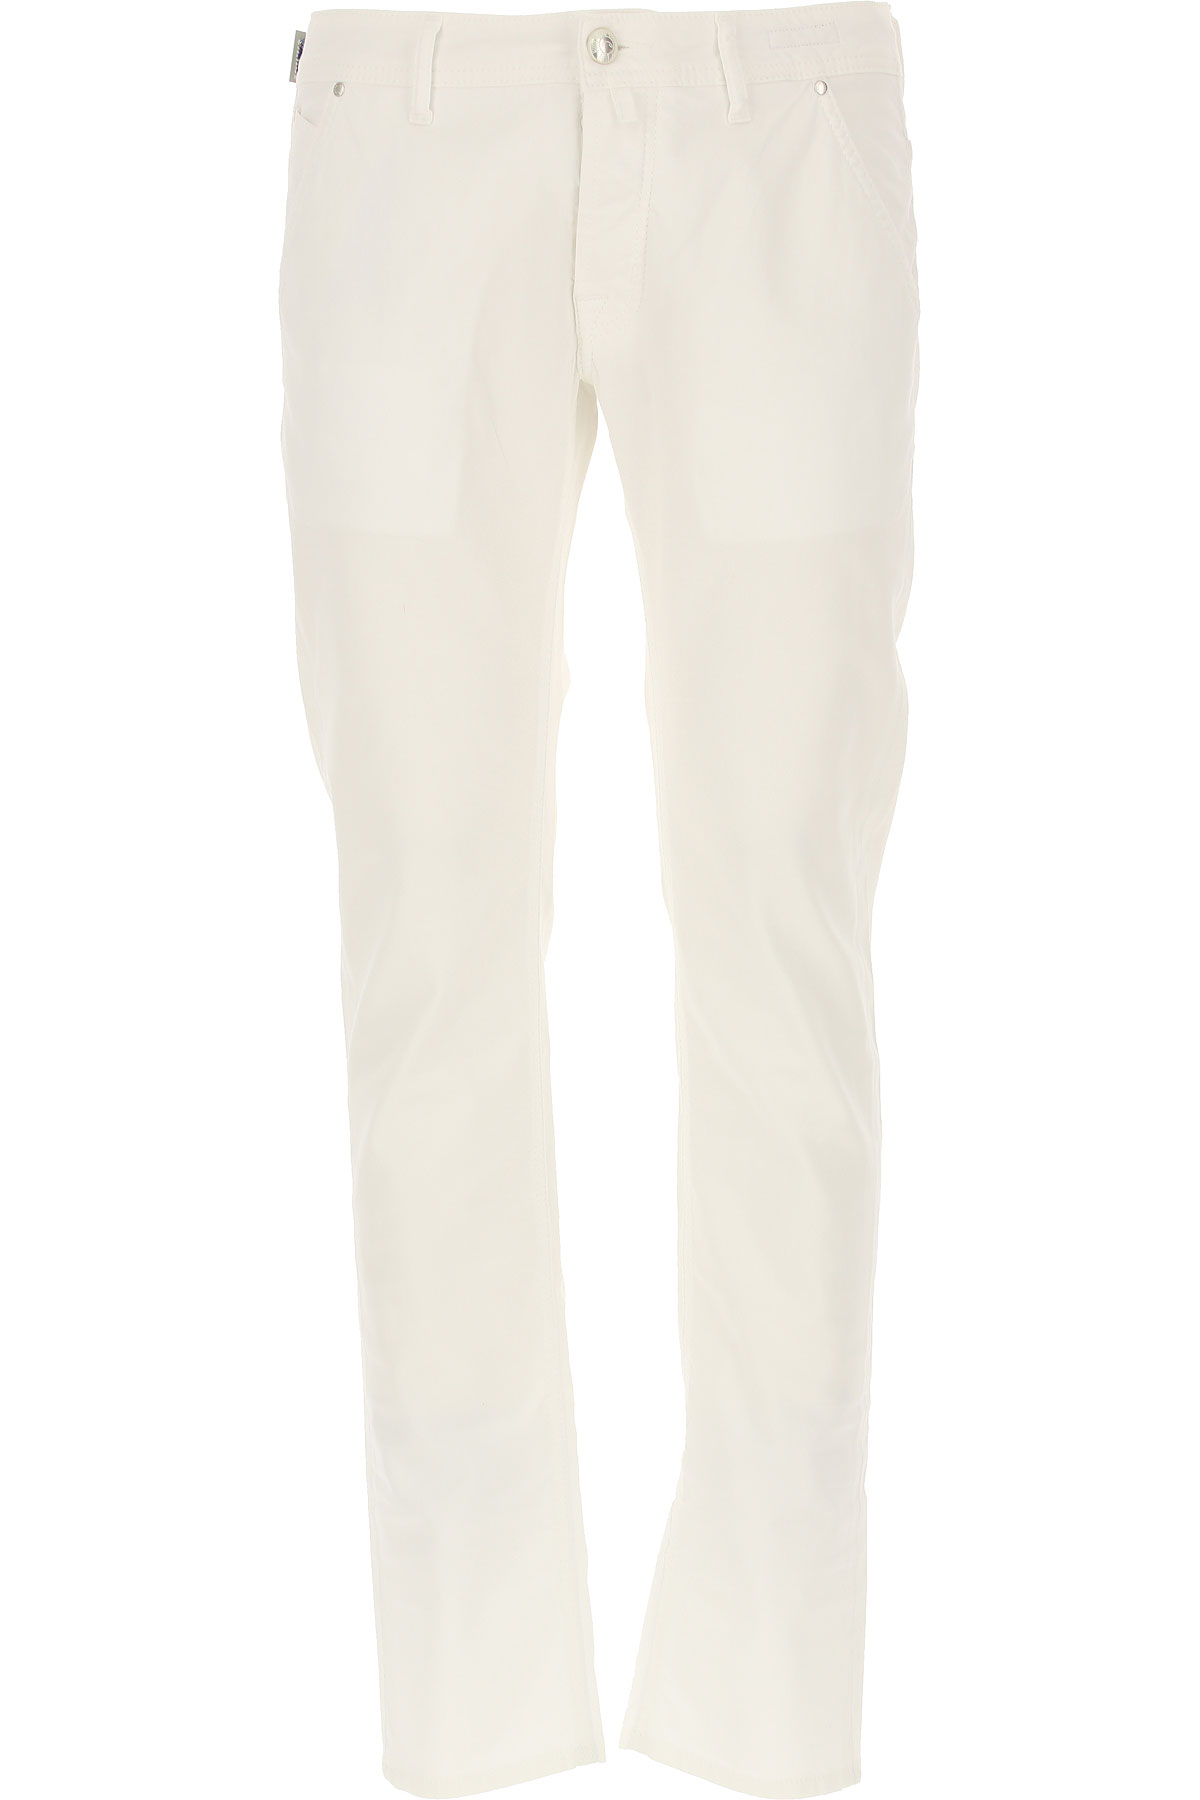 Jacob Cohen Jeans, White, Cotton, 2017, 32 34 36